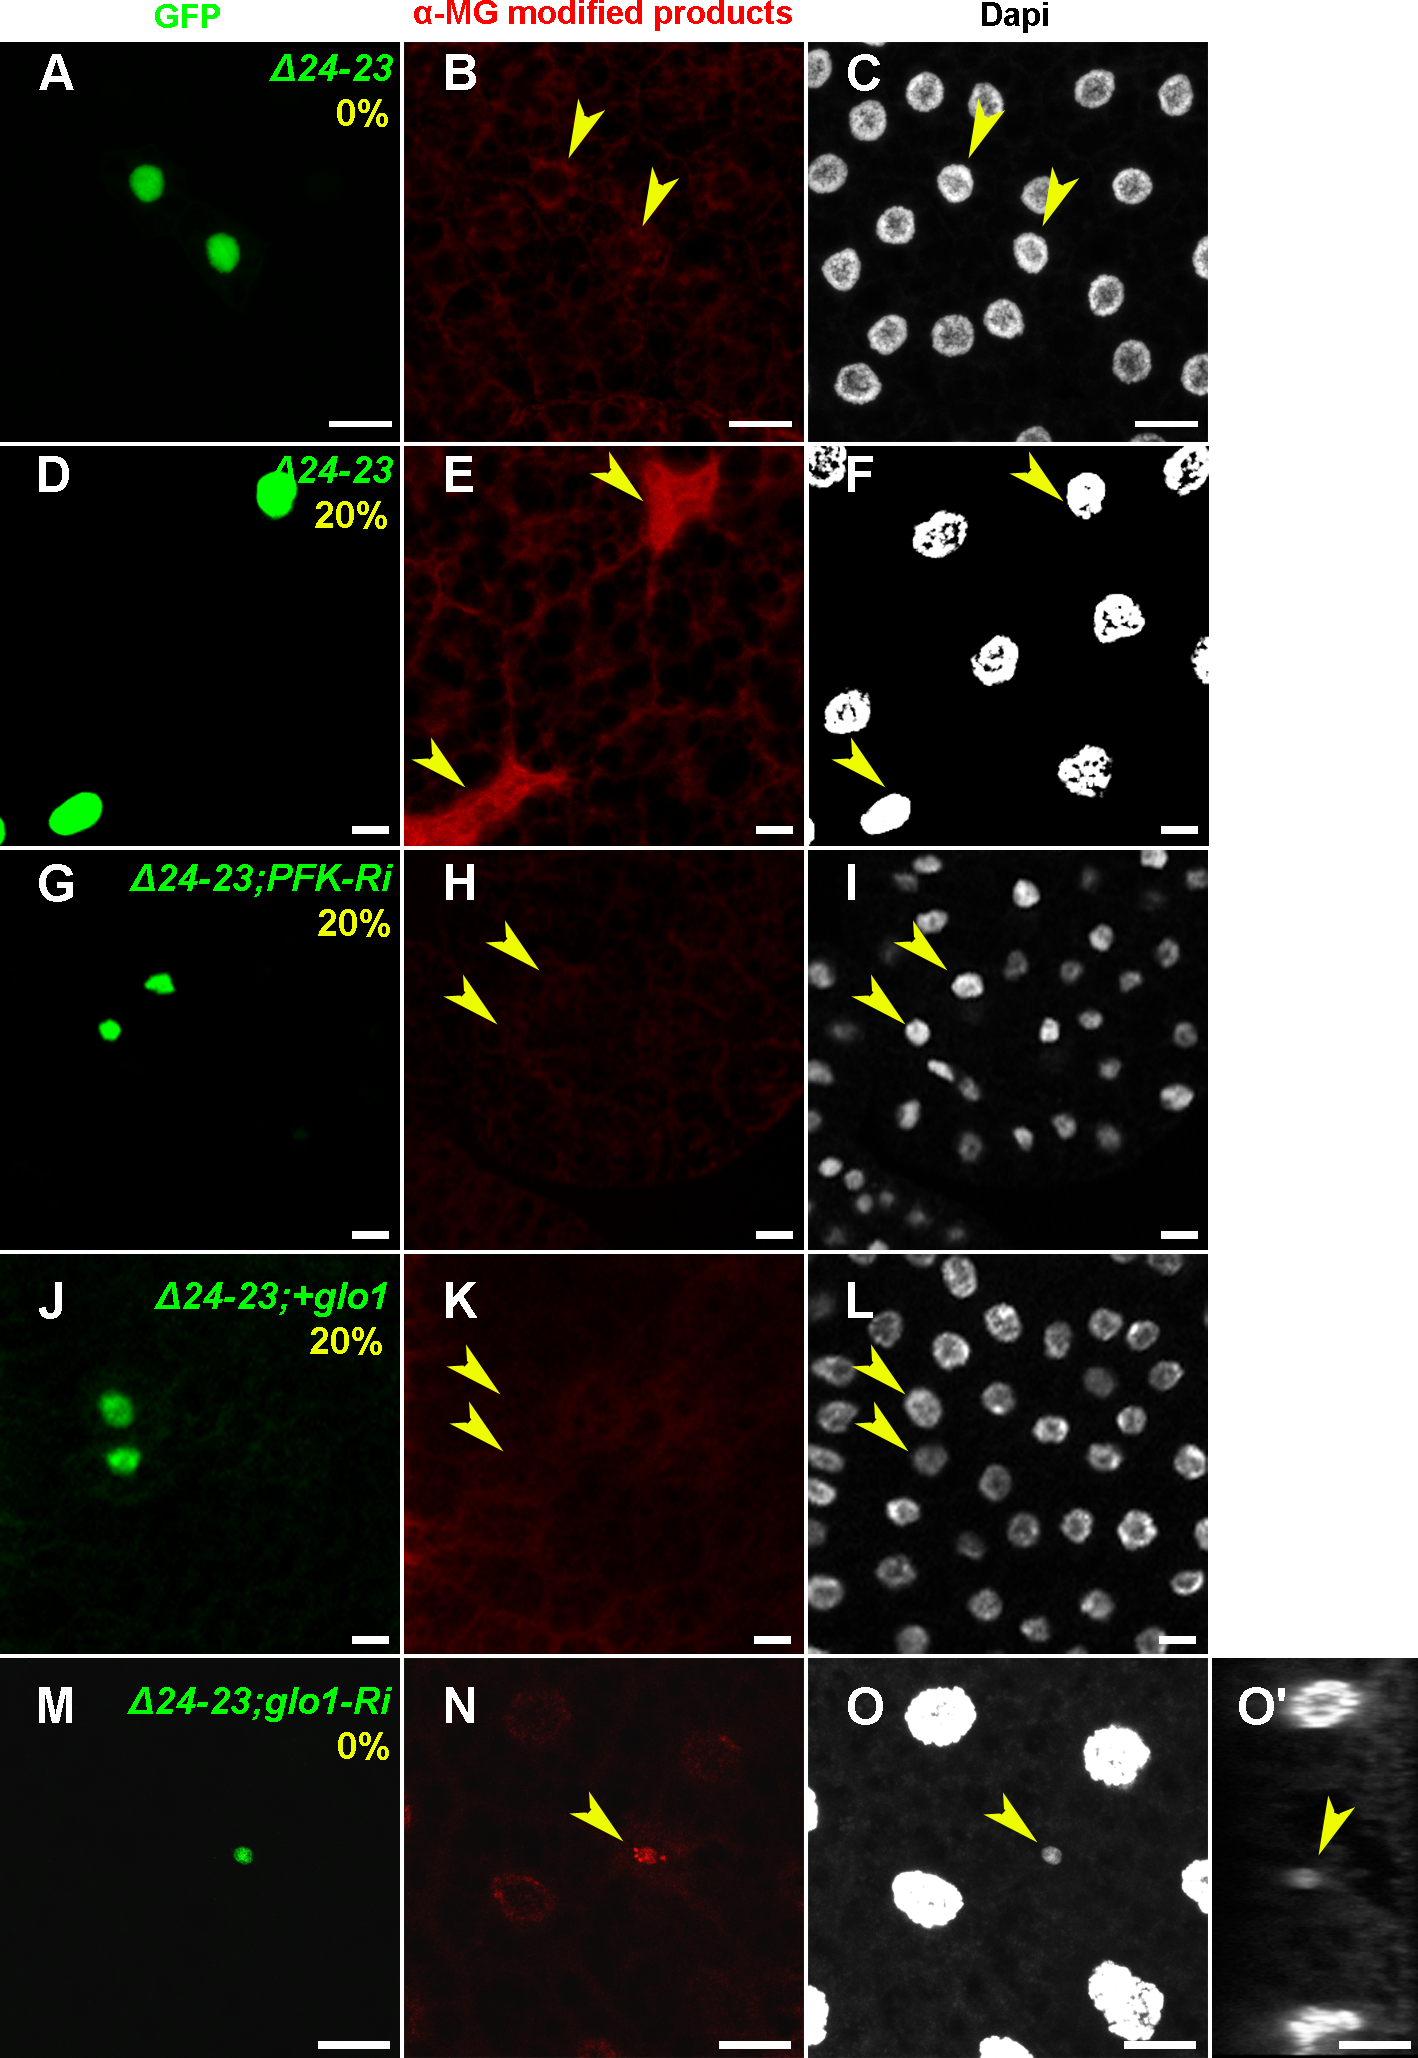 Cell-autonomous accumulation of MG-AGEs in <i>FASN</i> mutant FB cells.